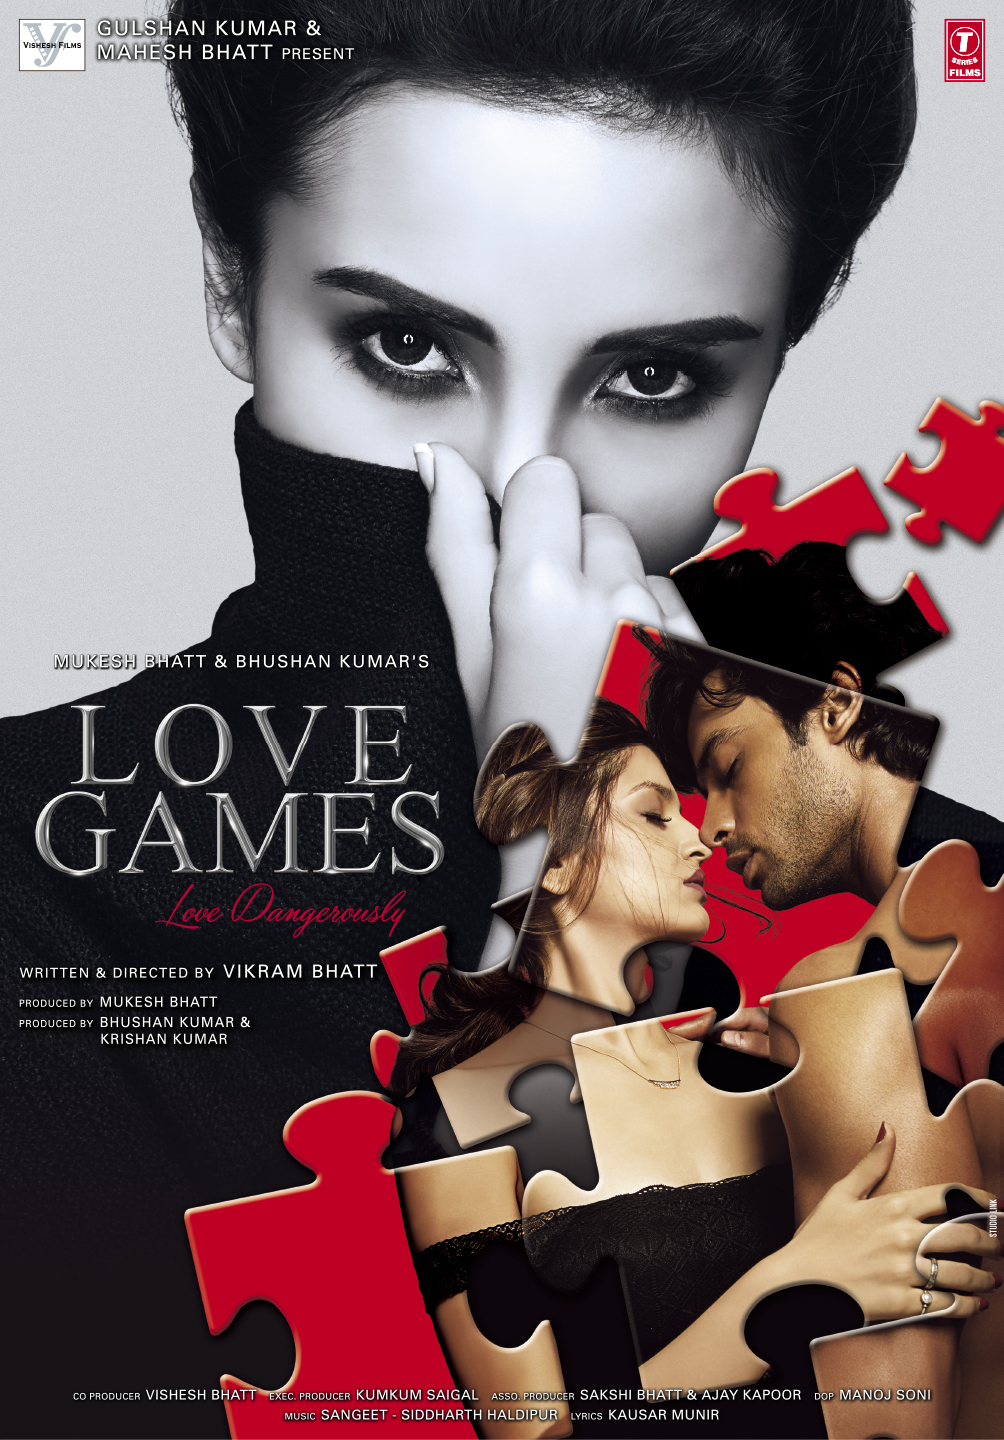 18+ Love Games (2016) Hindi Movie 720p HDRip 700MB Download